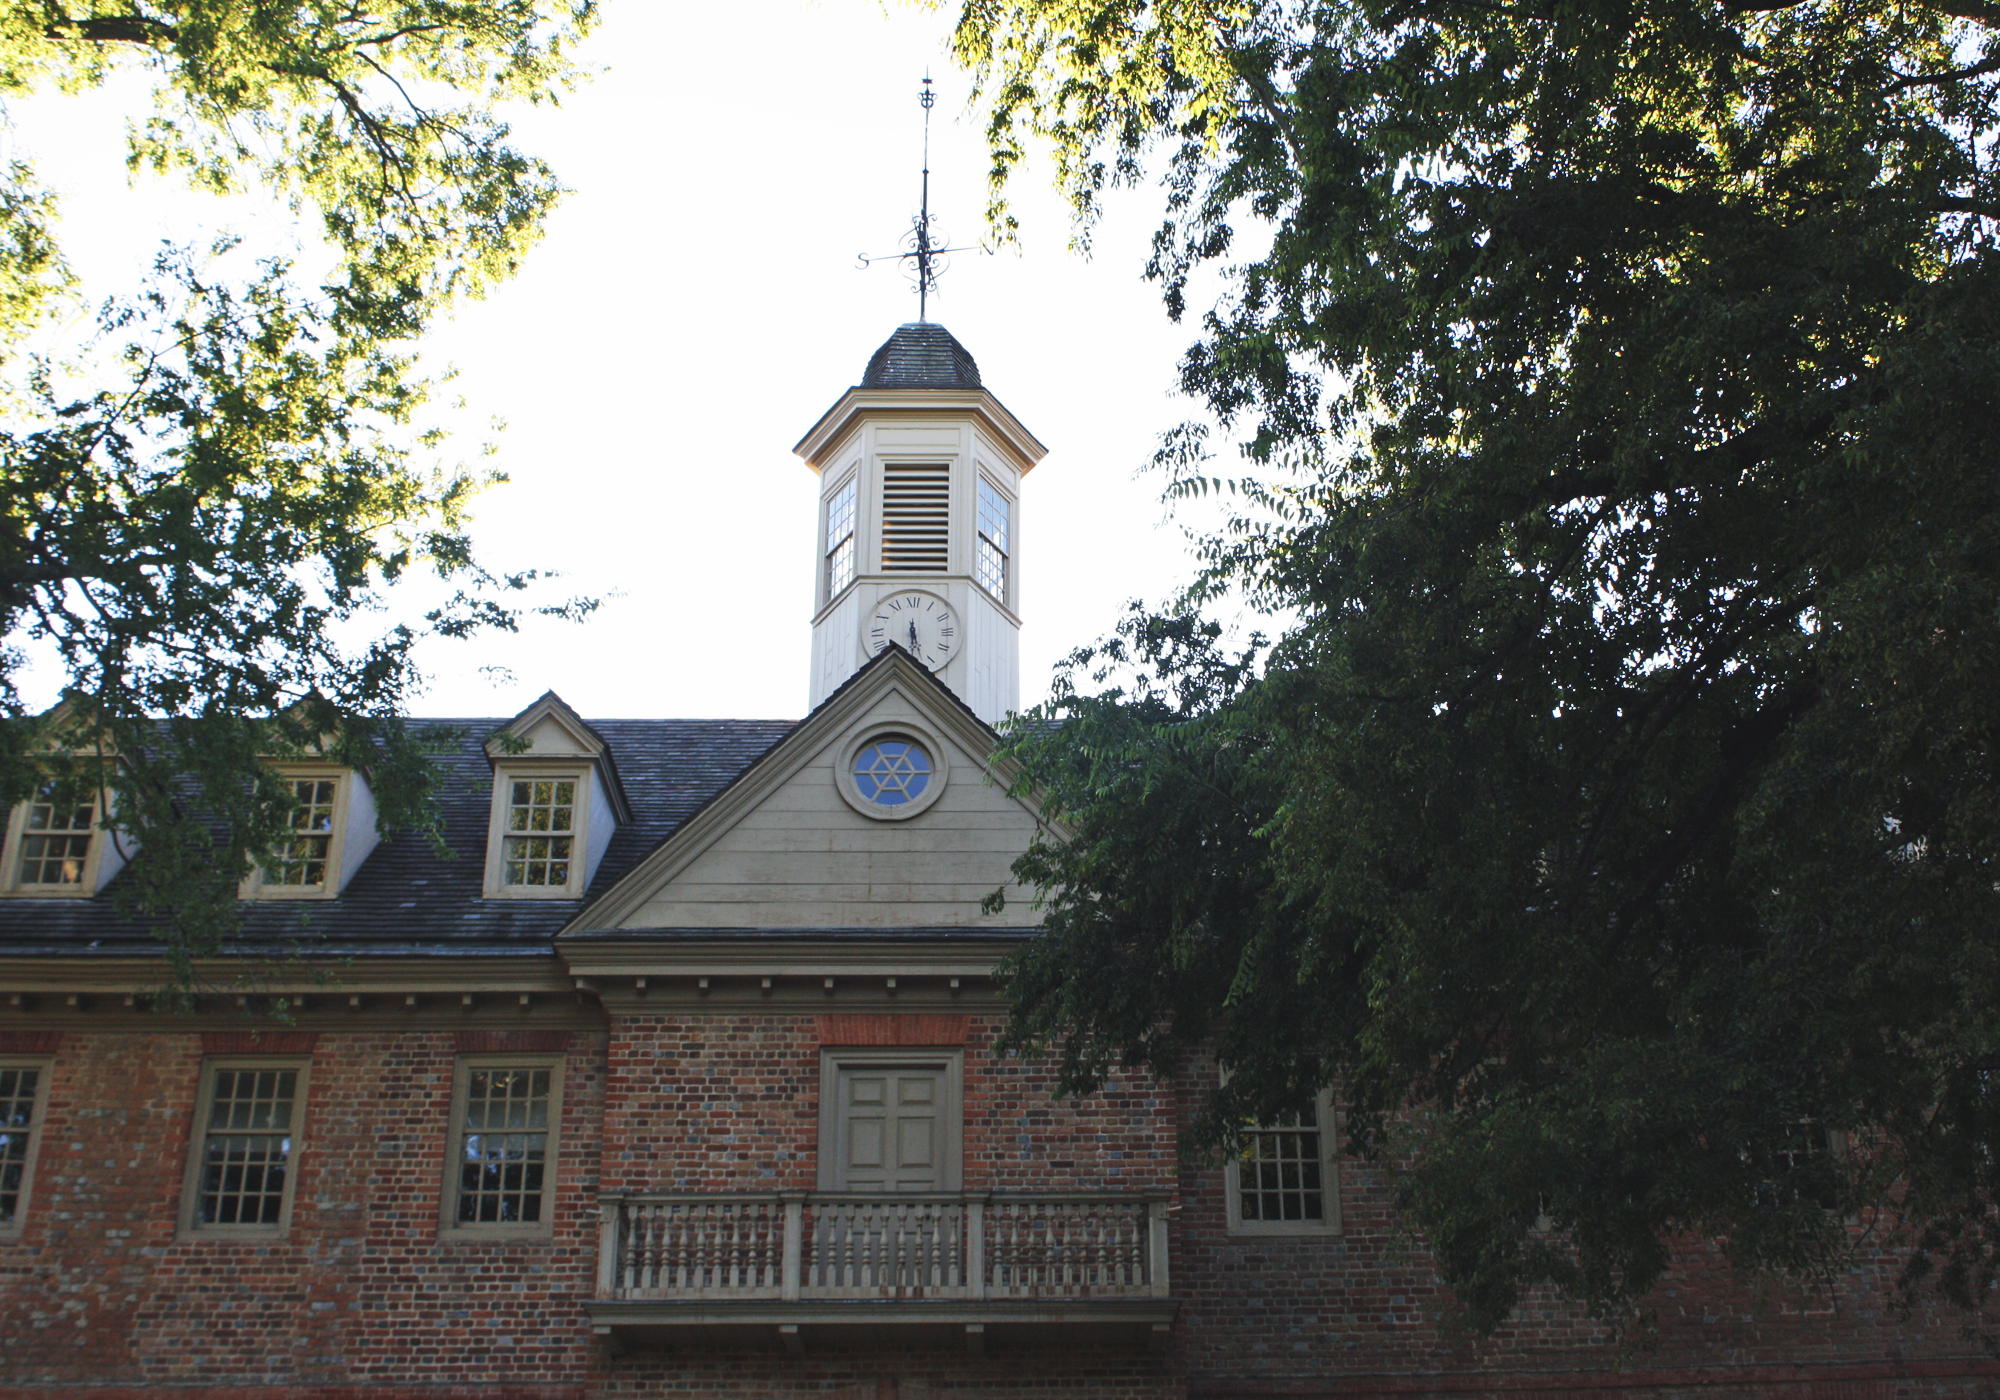 The Wren is the country's oldest academic building and is still in use, housing religion and philosophy classes.